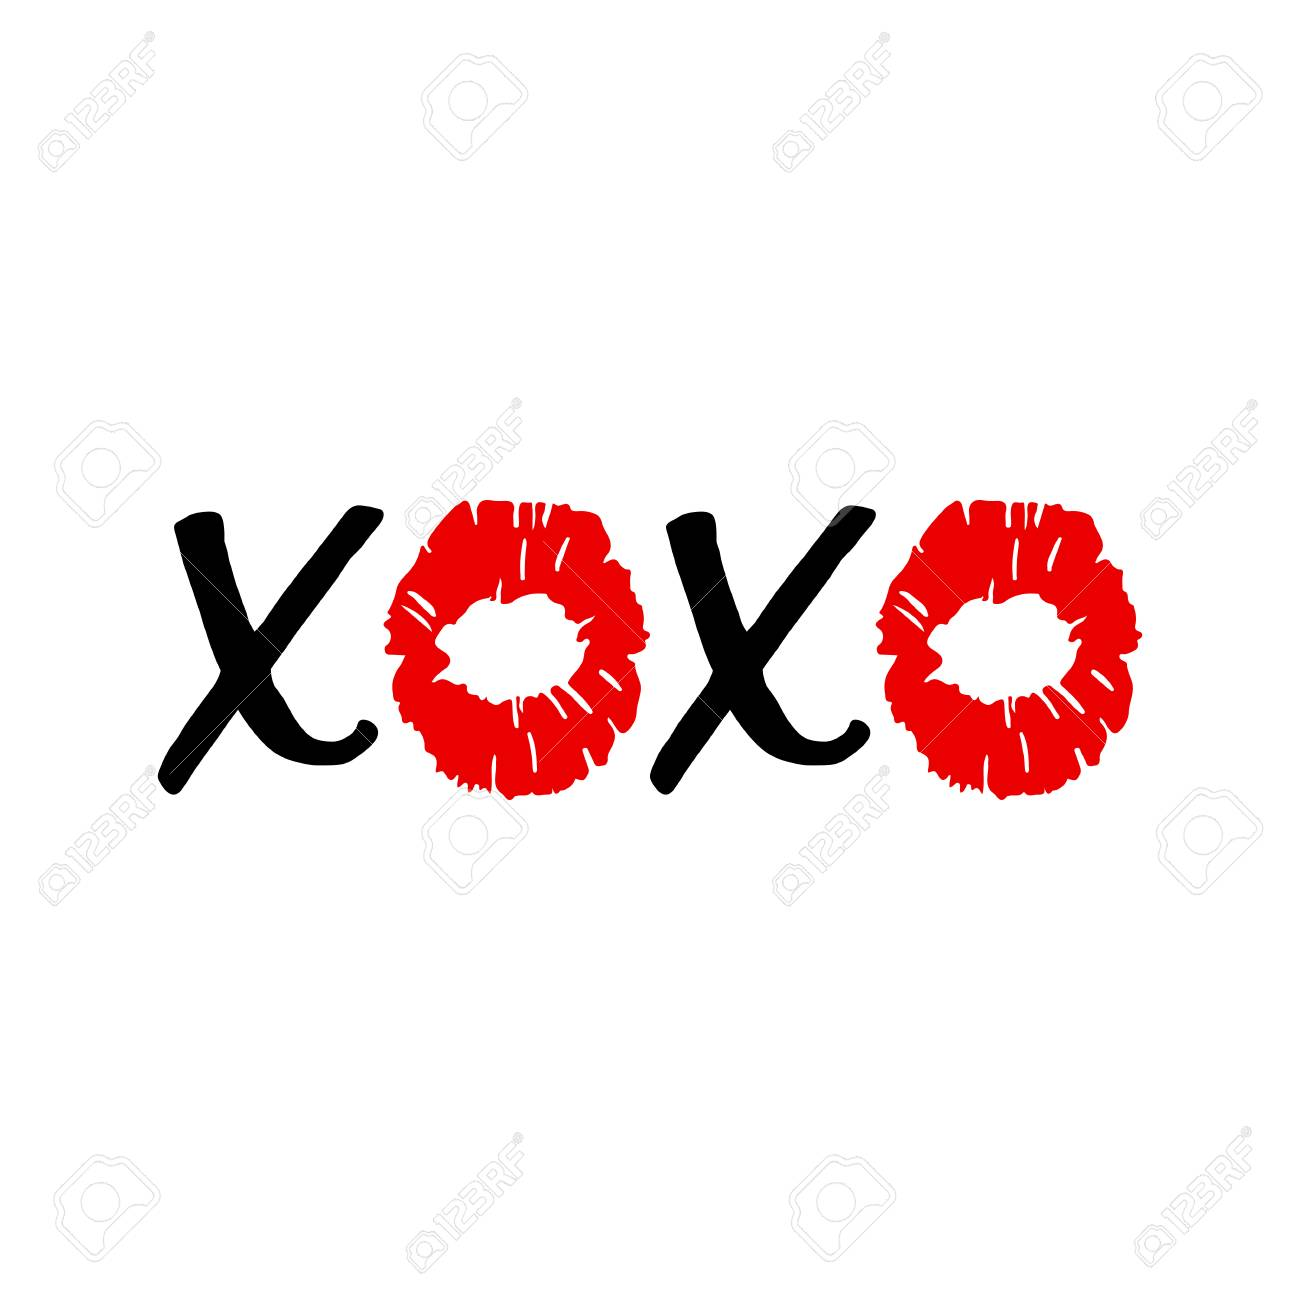 Xoxo Hugs And Kisses Lip Kiss Red Female Lips Valentines